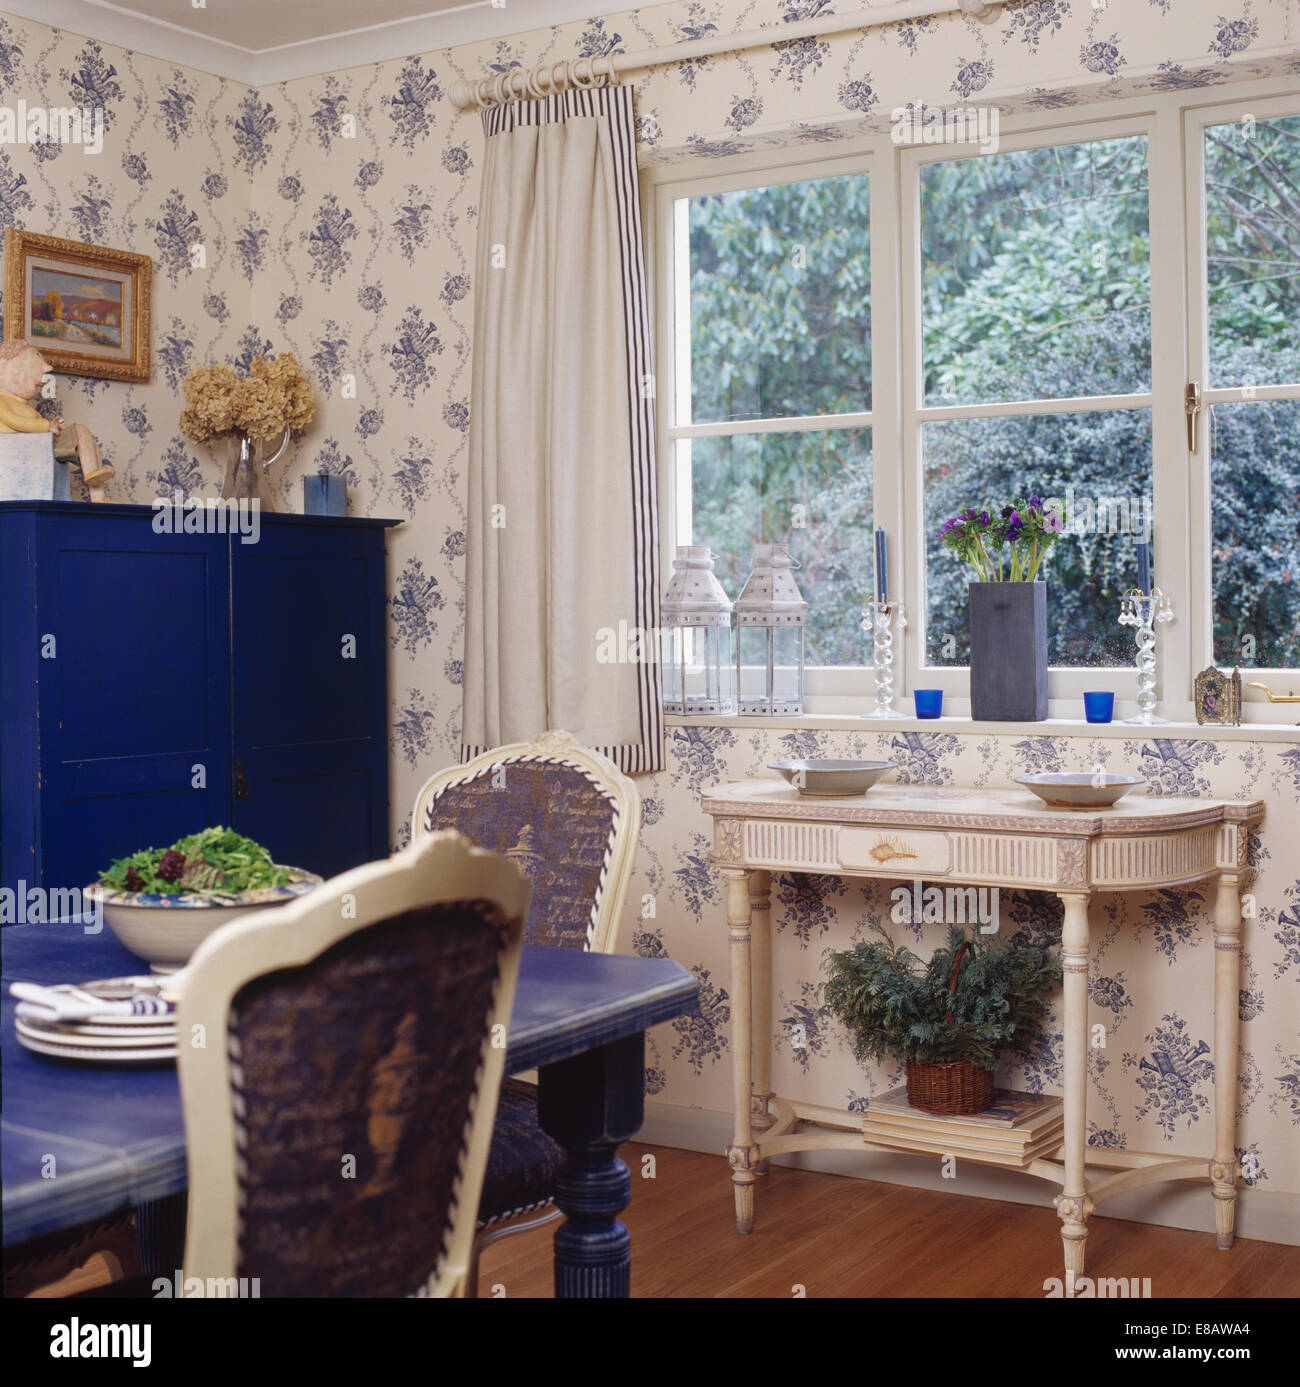 White Painted Console Table Below Window In Country Dining Room With  Blue+white Floral Wallpaper